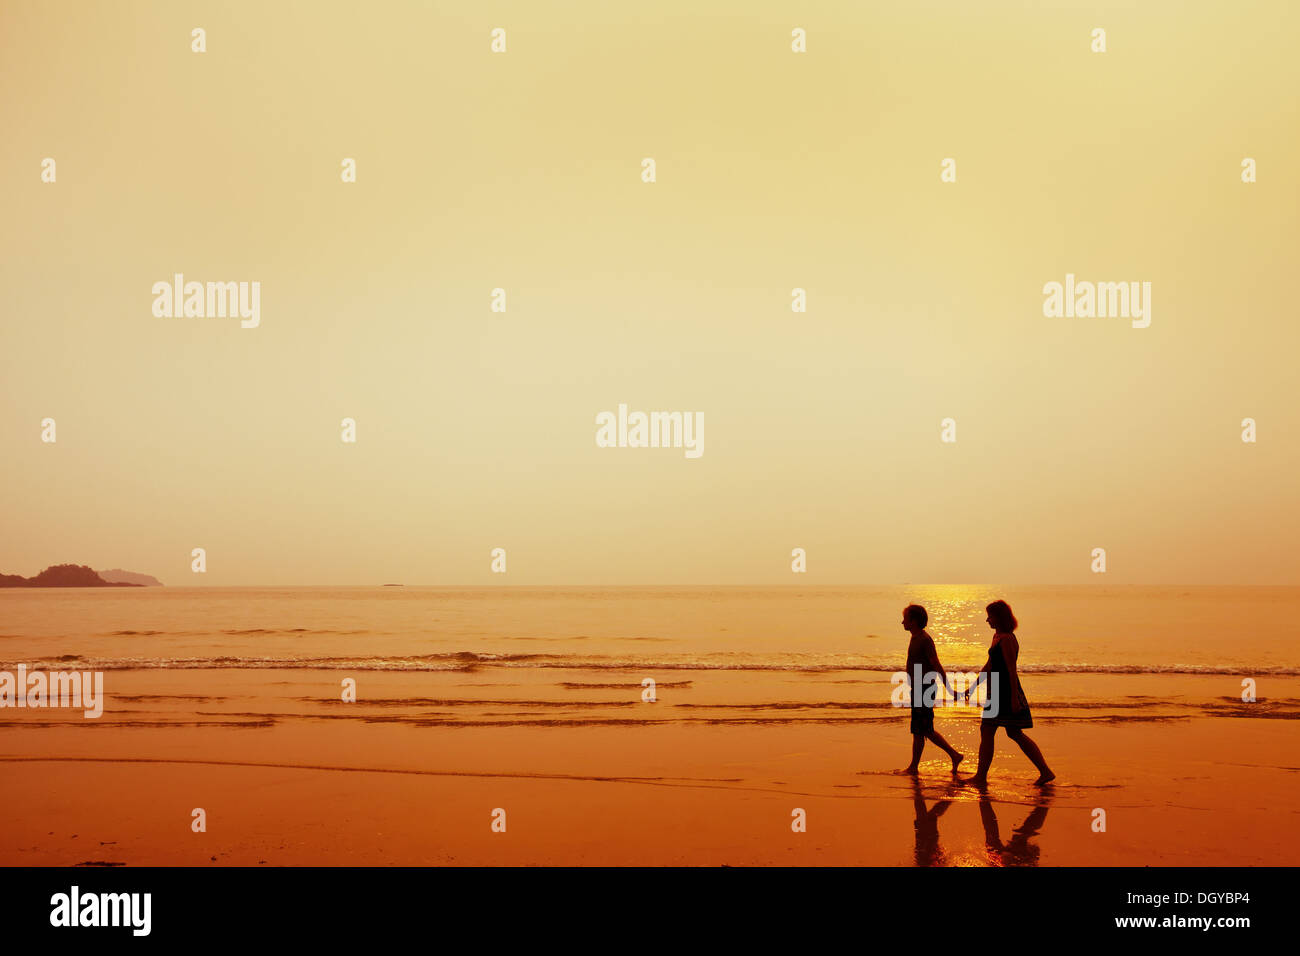 silhouette of couple on the beach - Stock Image